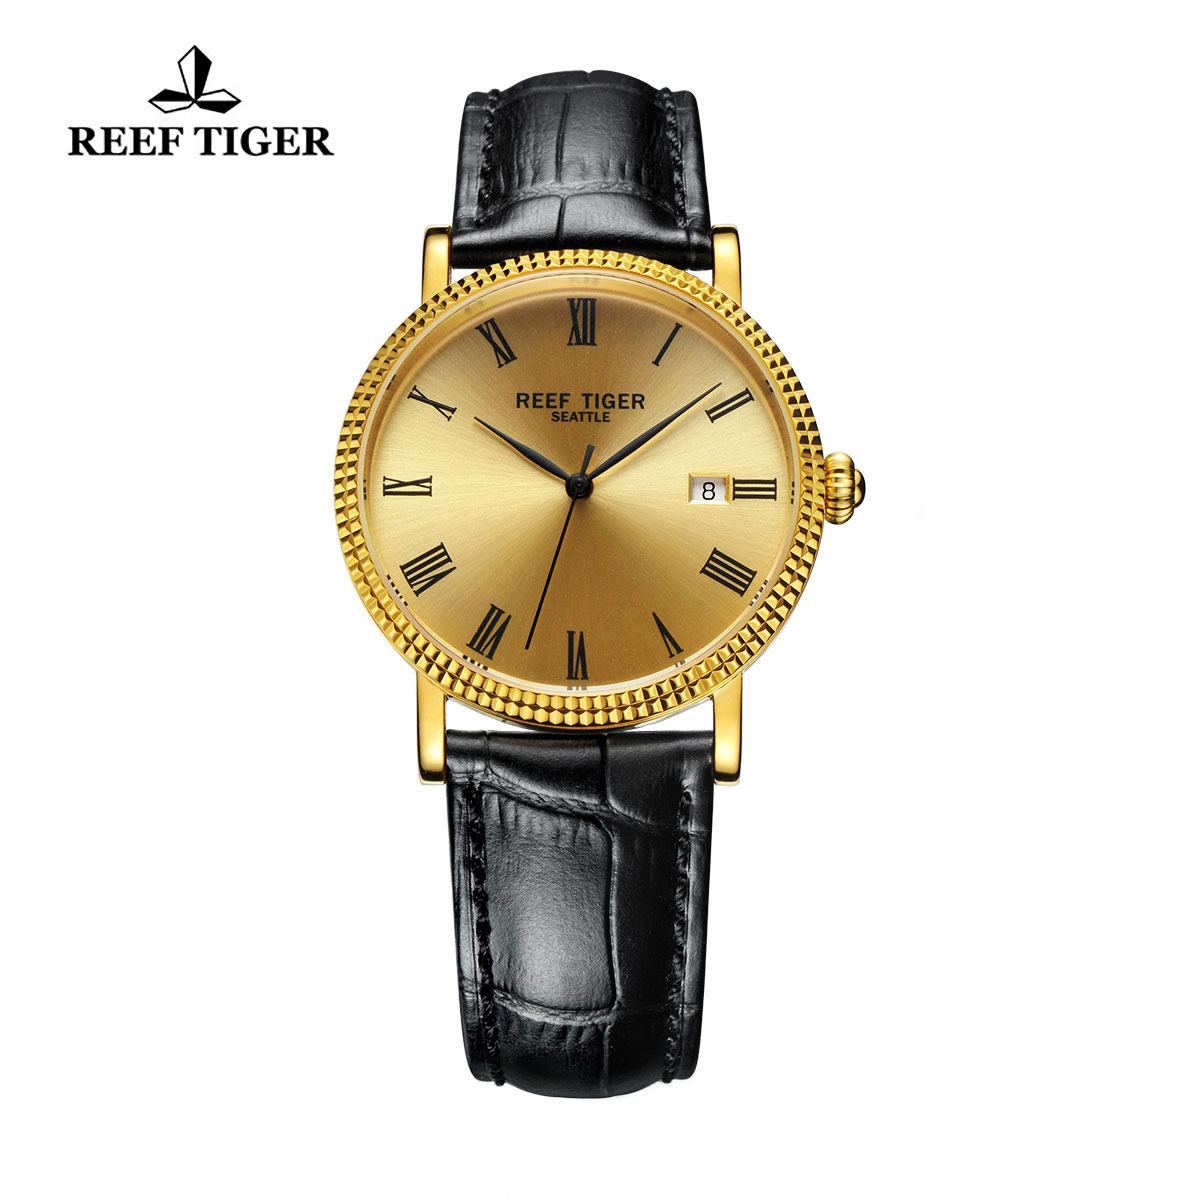 Reef Tiger Dress Watch Yellow Gold Champagne Dial Leather Strap Automatic Watch RGA163-GPB